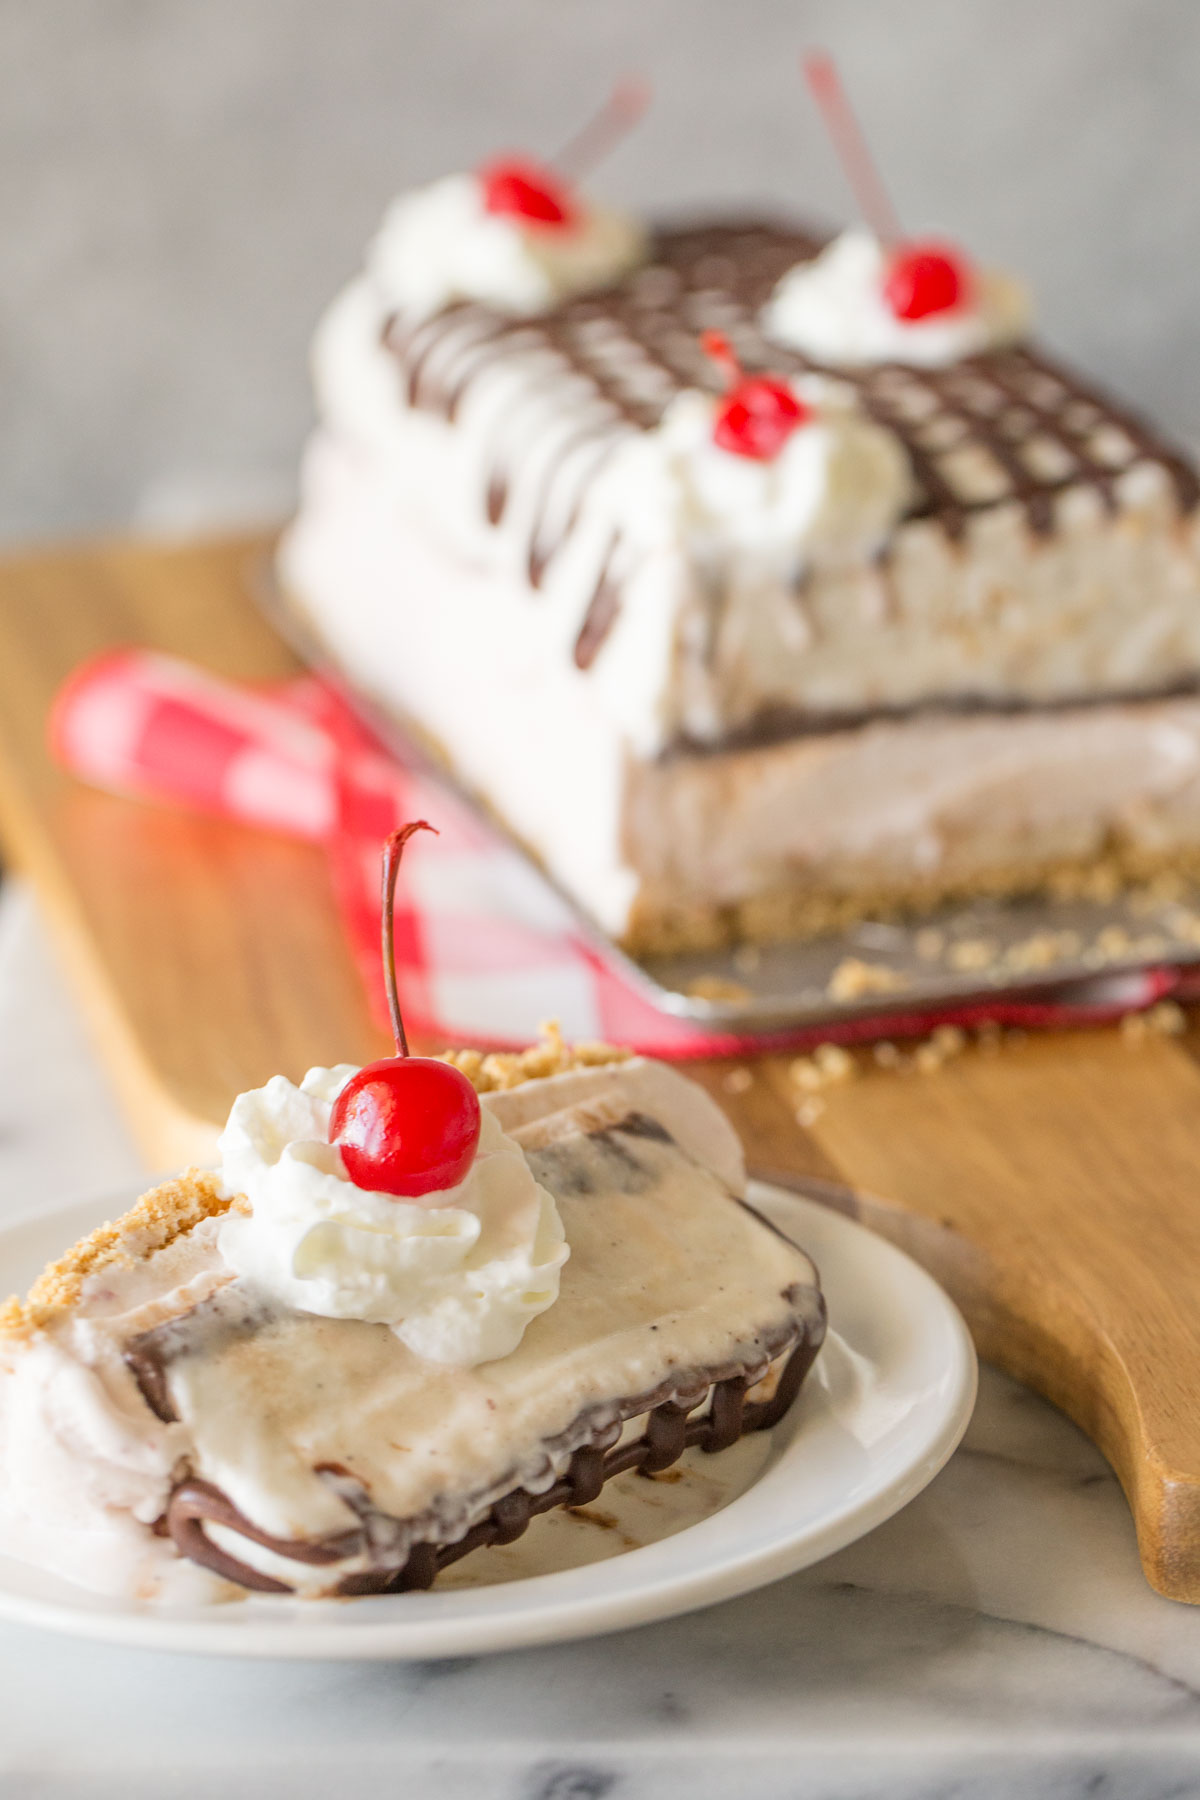 A slice of Banana Split Ice Cream Cake on a plate topped with whipped cream and a cherry, with the rest of the Banana Split Ice Cream Cake in the background.